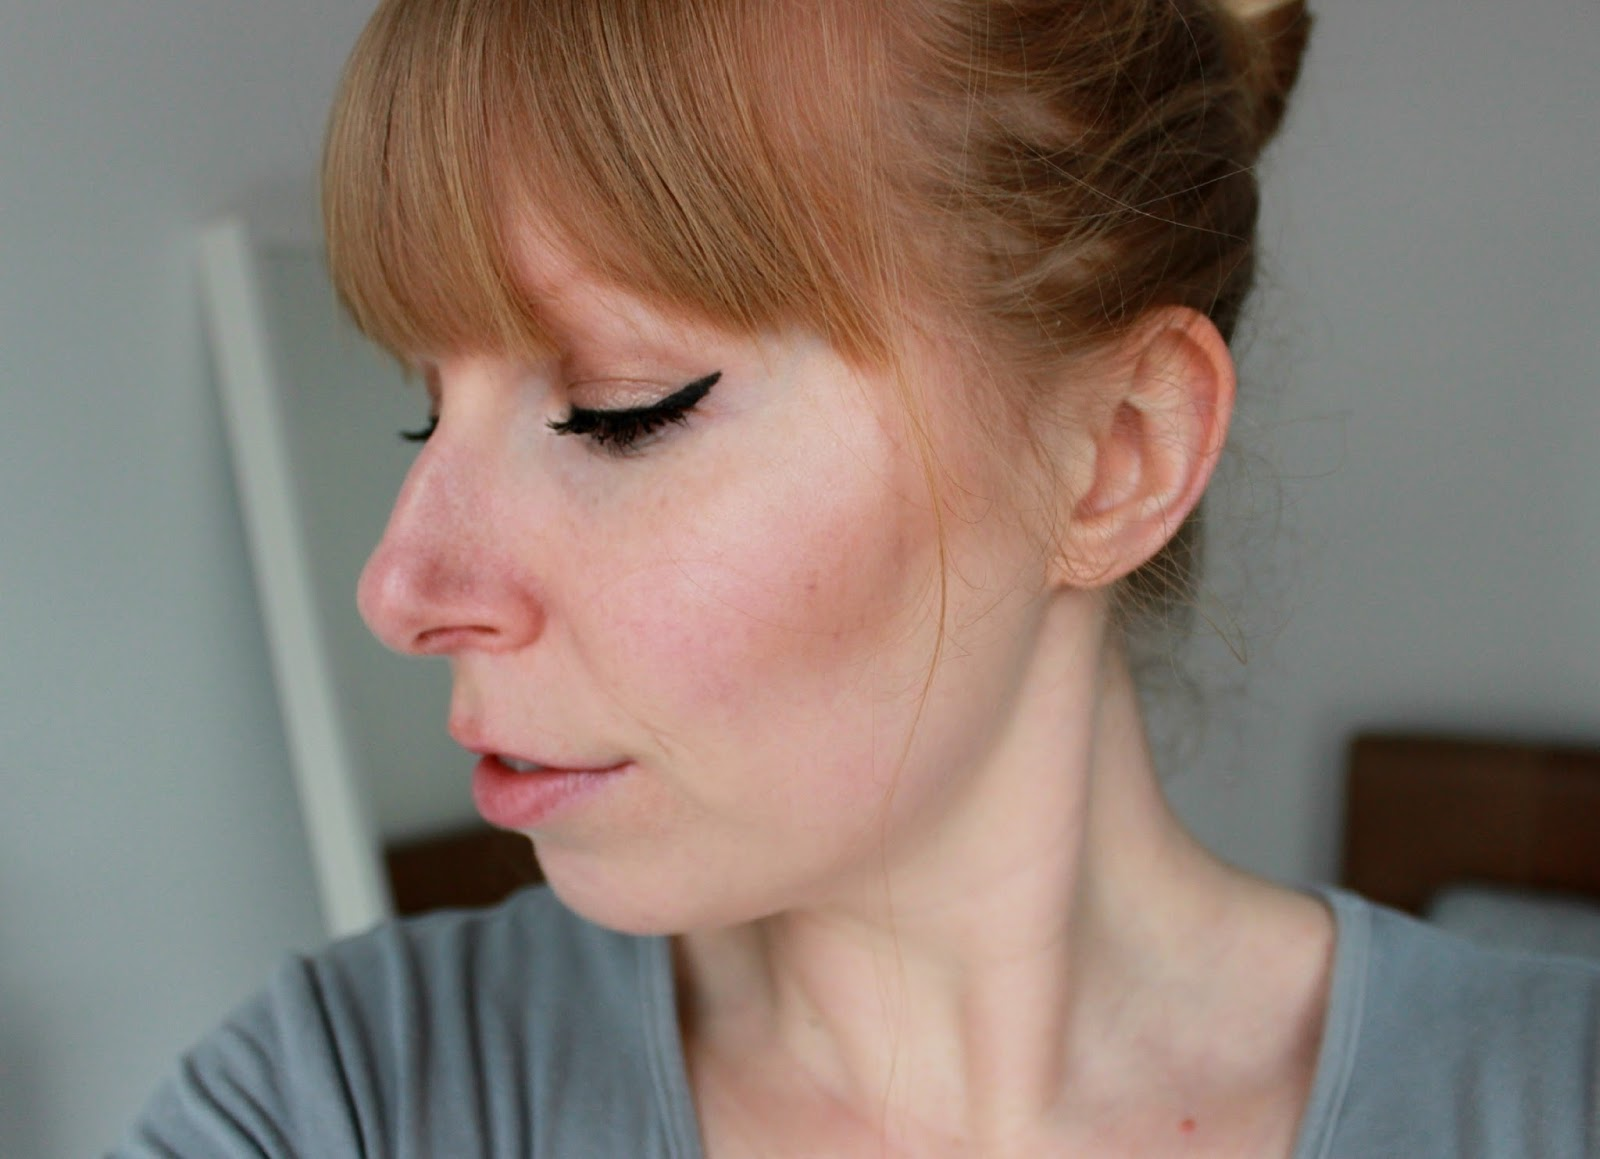 Clinique Chubby Stick Sculpting Contour and Highlight sticks swatches on pale skin